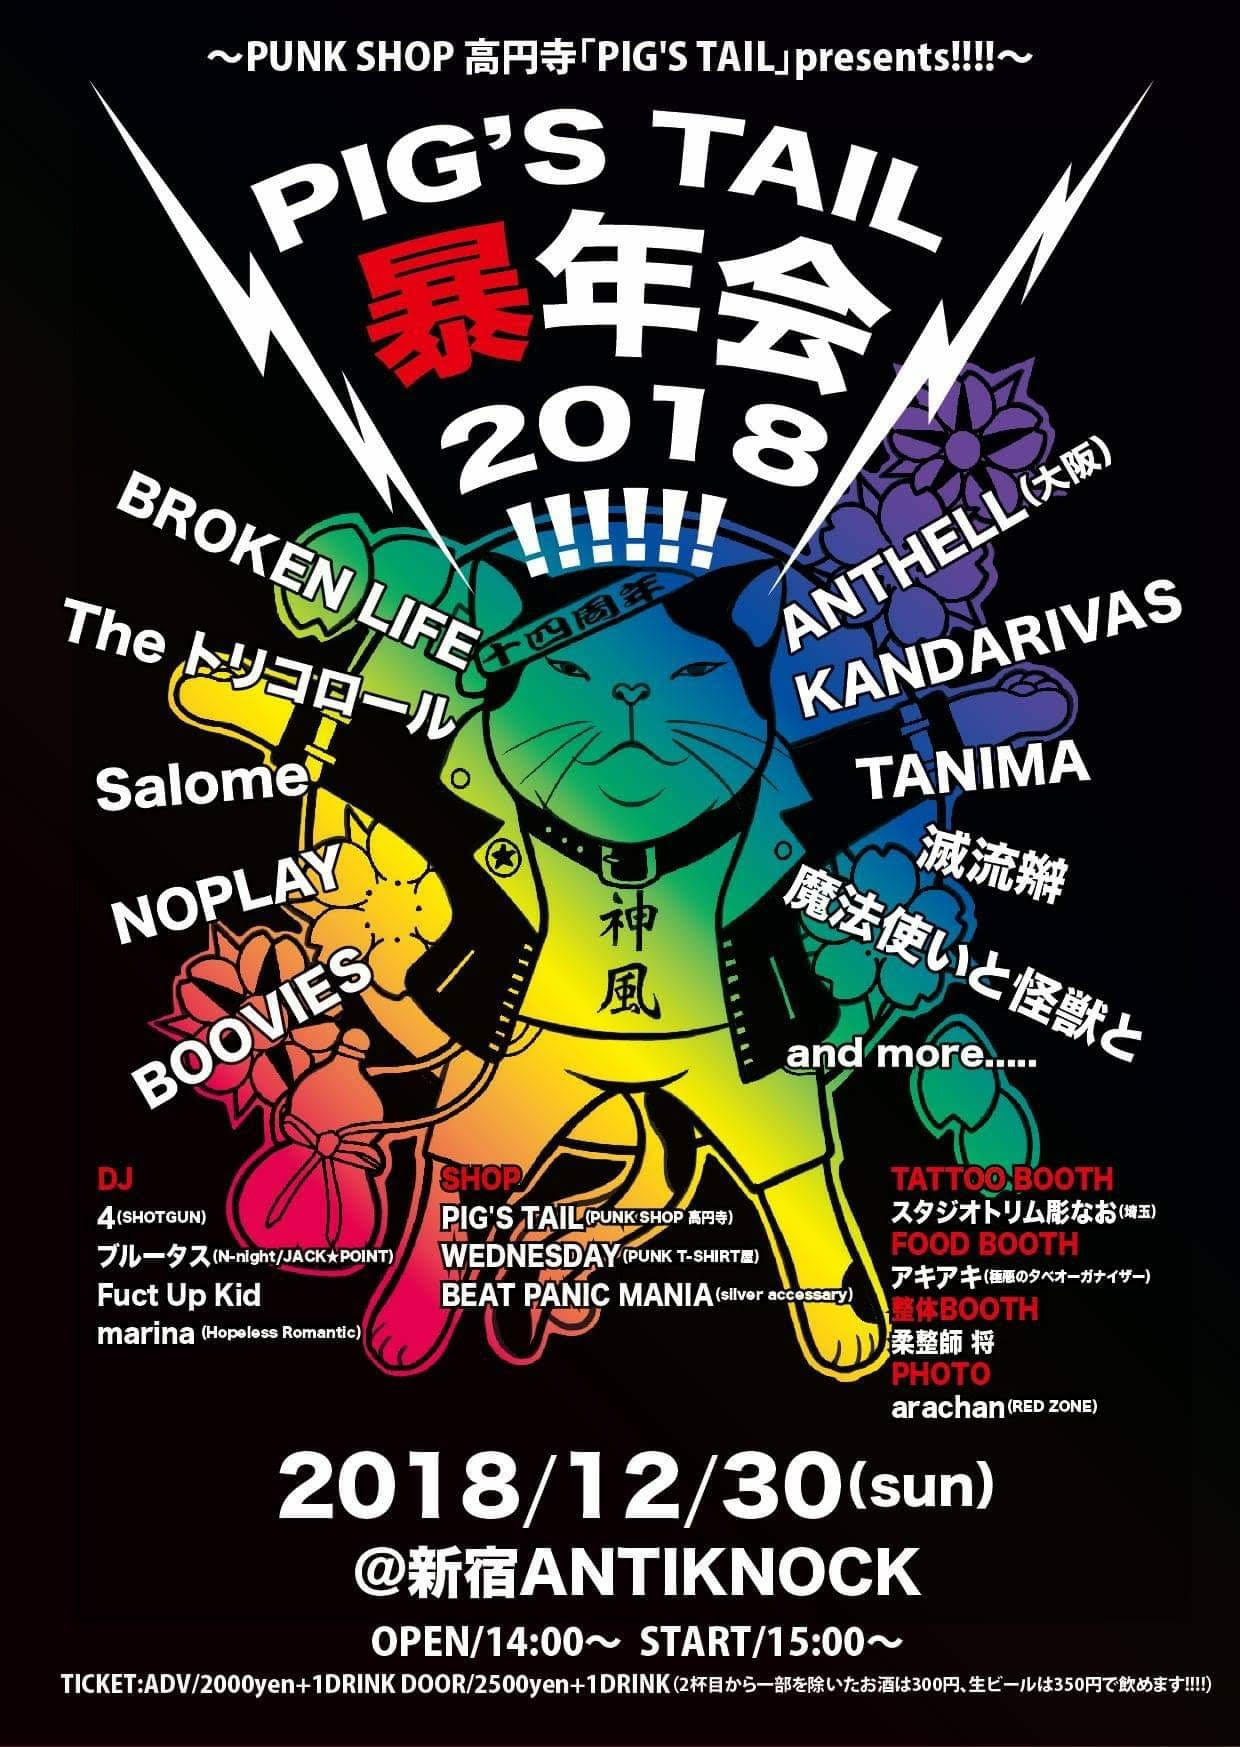 PUNK SHOP「PIG'S TAIL」presents!!!! 【PIG'S TAIL 暴年会 2018!!!!!!】